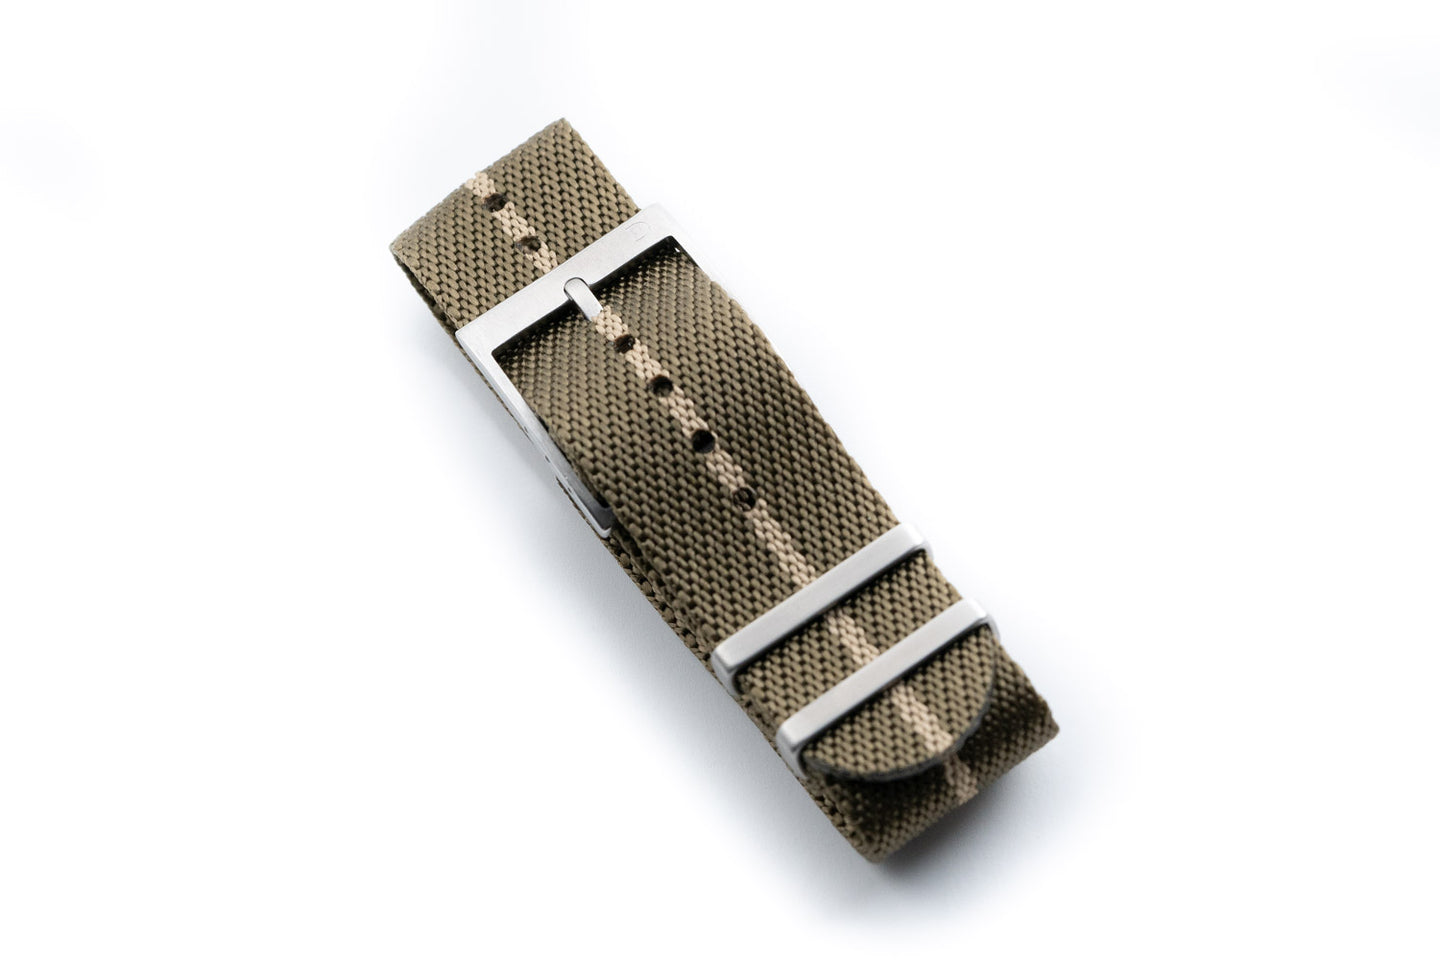 DIY Watch Club Classic NATO Strap - Olive with Khaki centerline